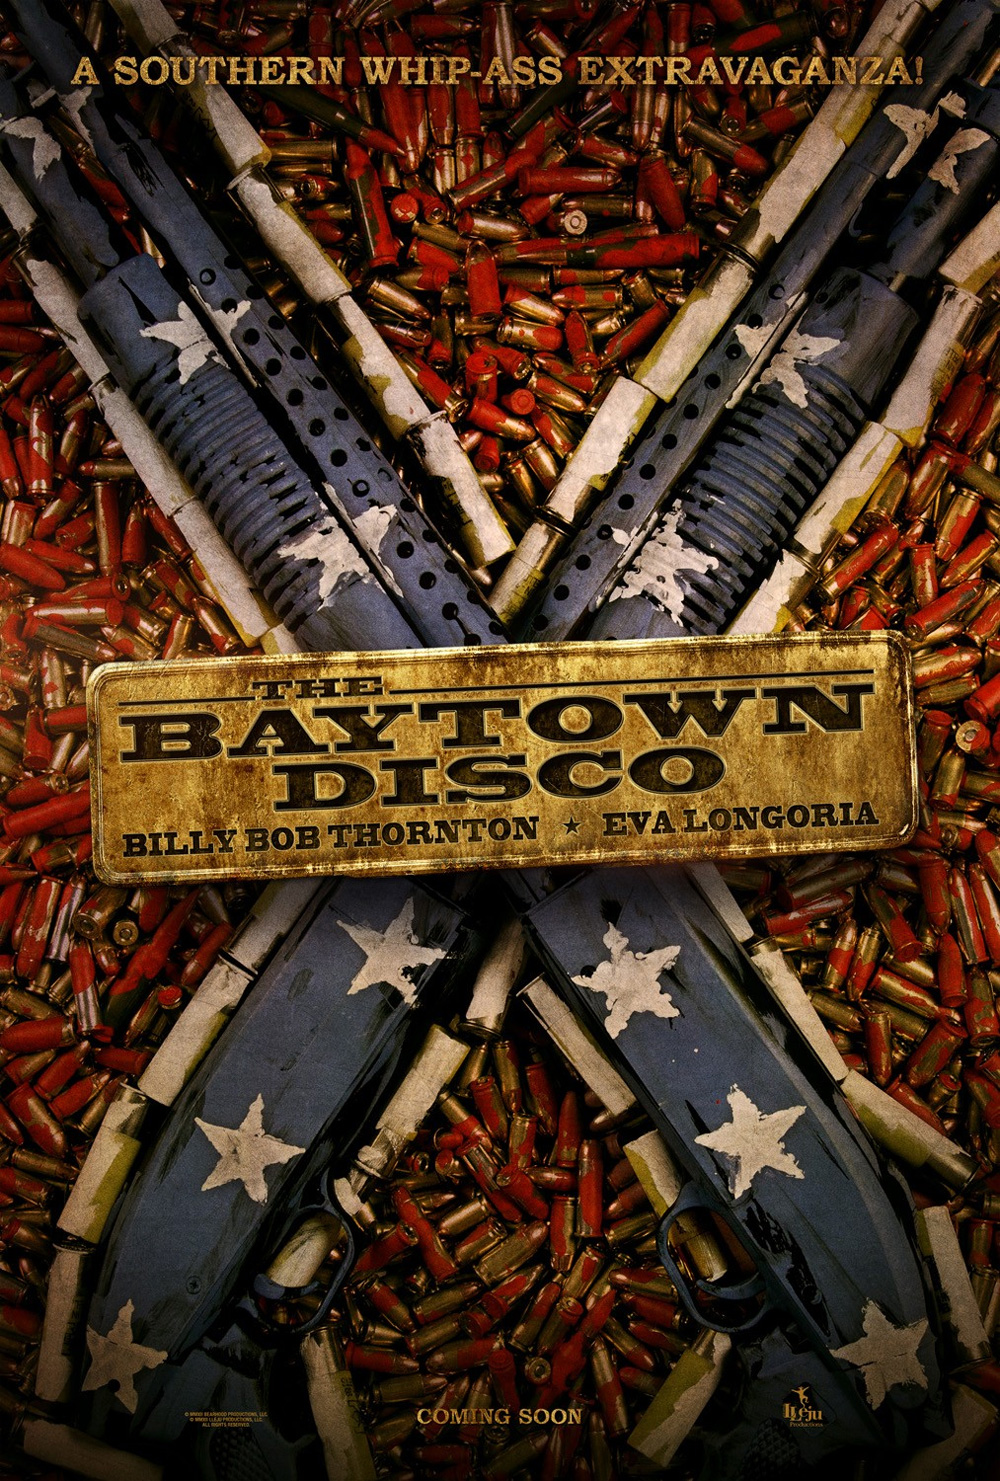 Agnes bruckner zoe bell serinda swan brea grant arden cho in the baytown outlaws 2012 - 3 2